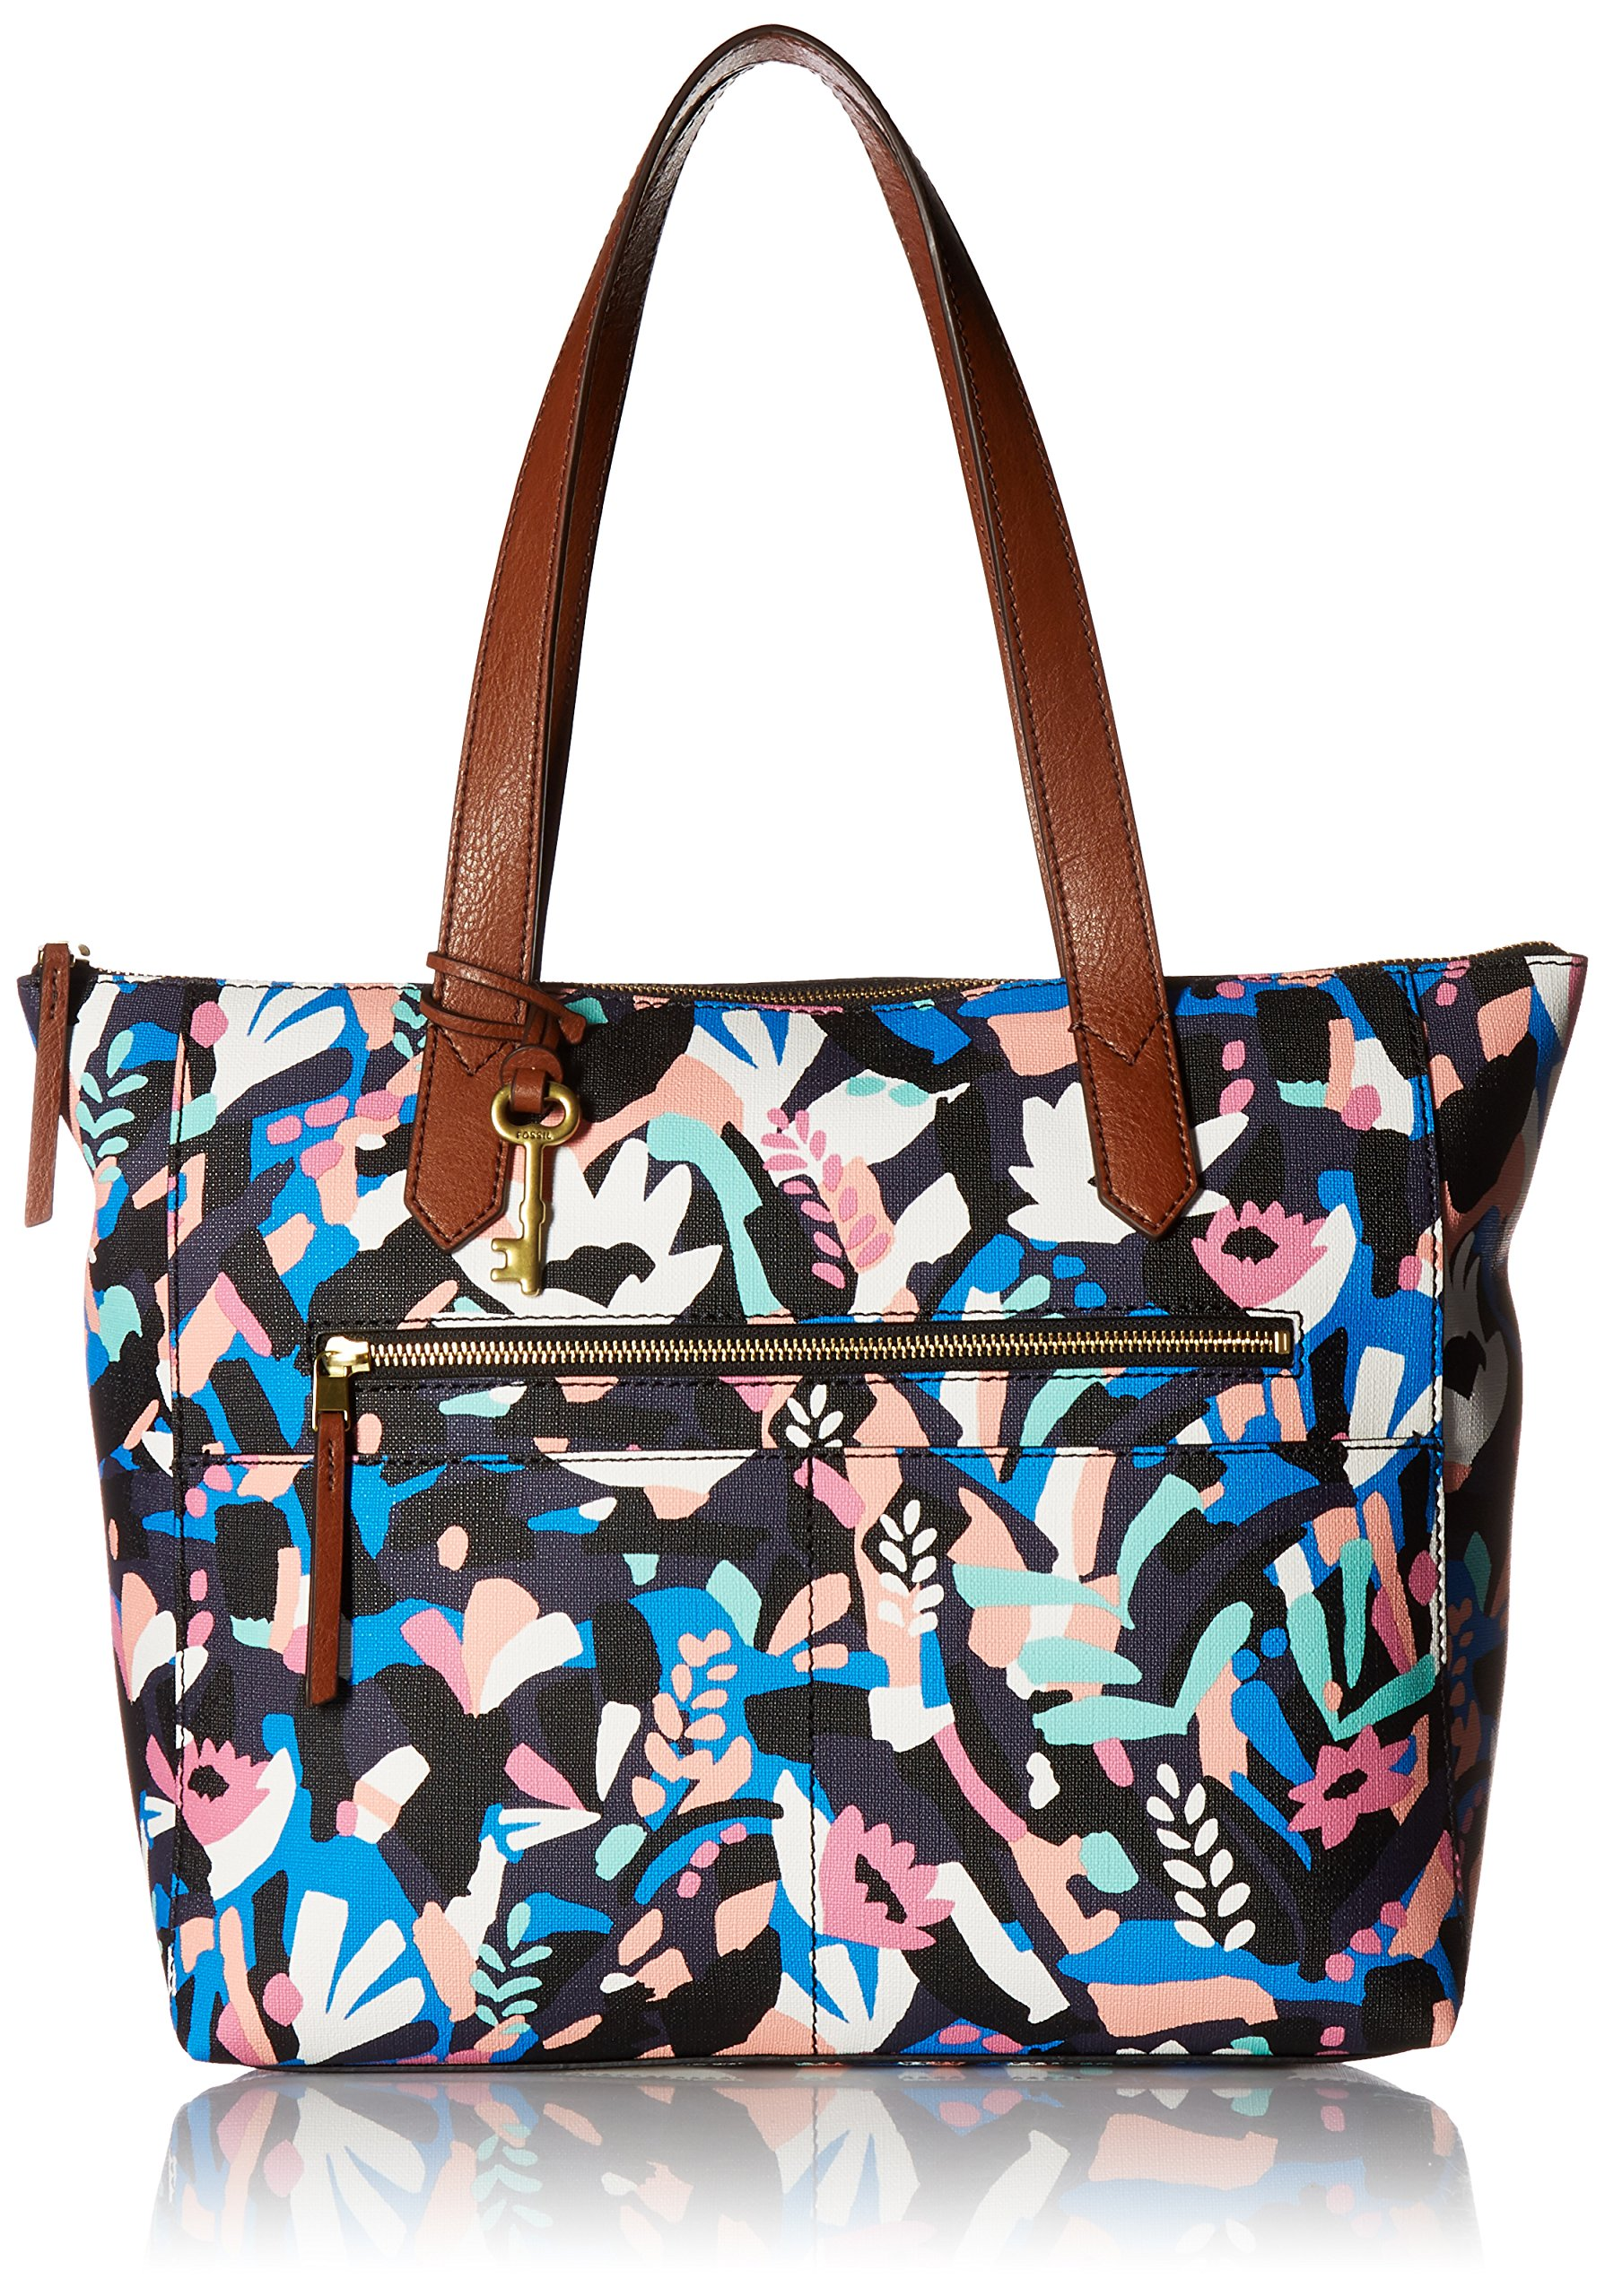 Fossil Fiona E/W Tote Bag, Black Floral,One Size by Fossil (Image #1)